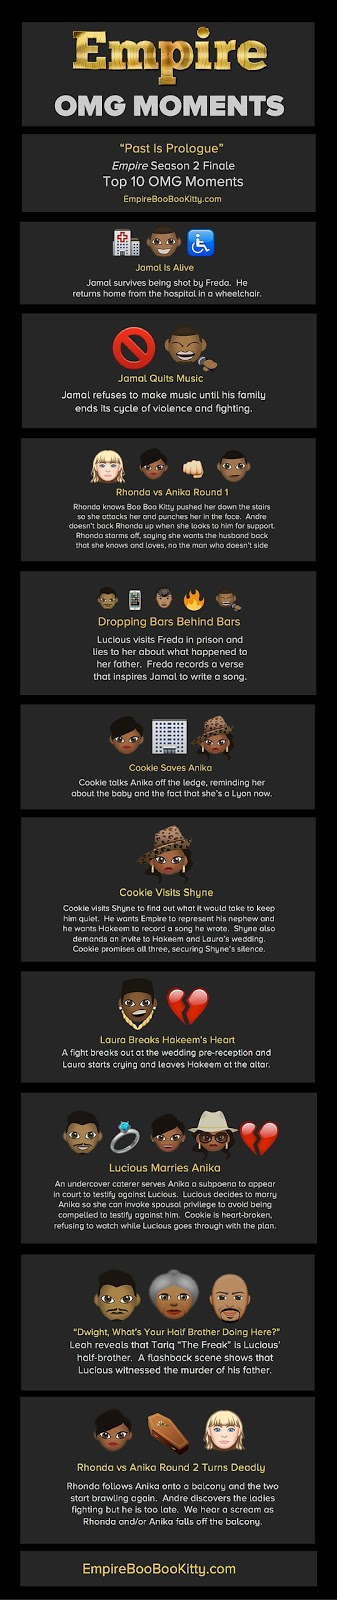 Empire Fox Season 2 Finale Infographic Past Is Prologue Top 10 OMG Moments